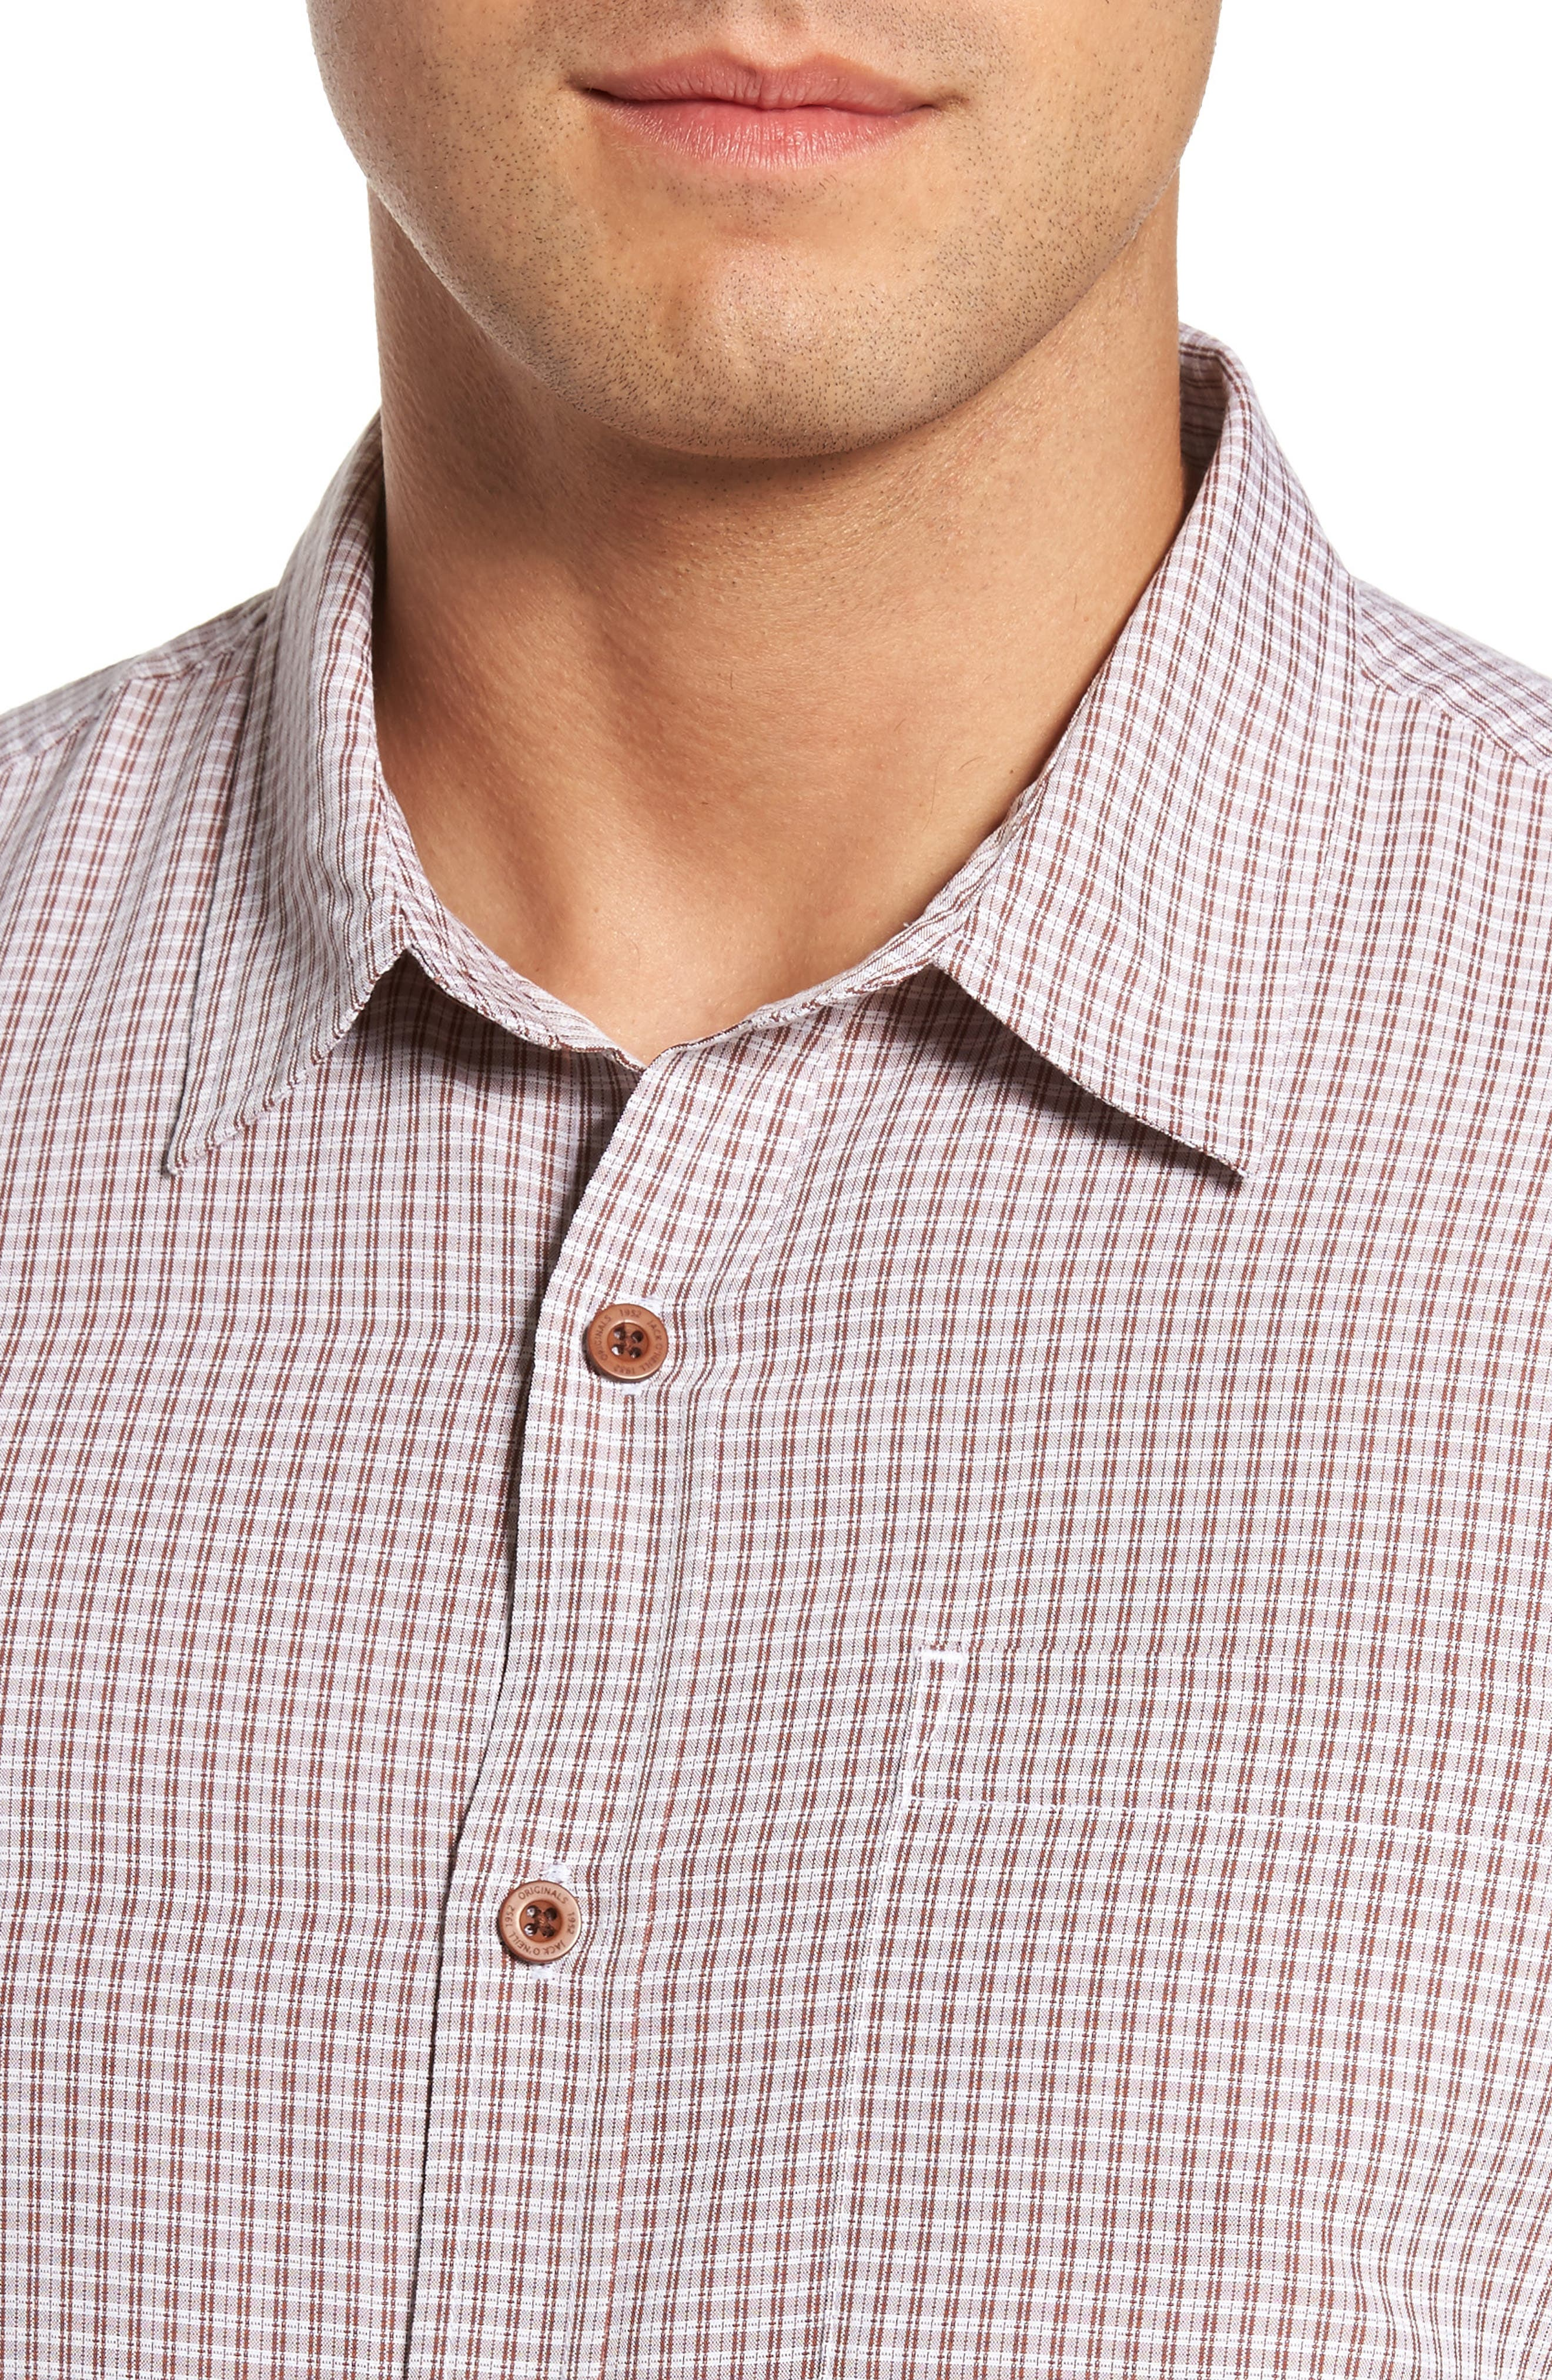 Ford Sport Shirt,                             Alternate thumbnail 4, color,                             Picante